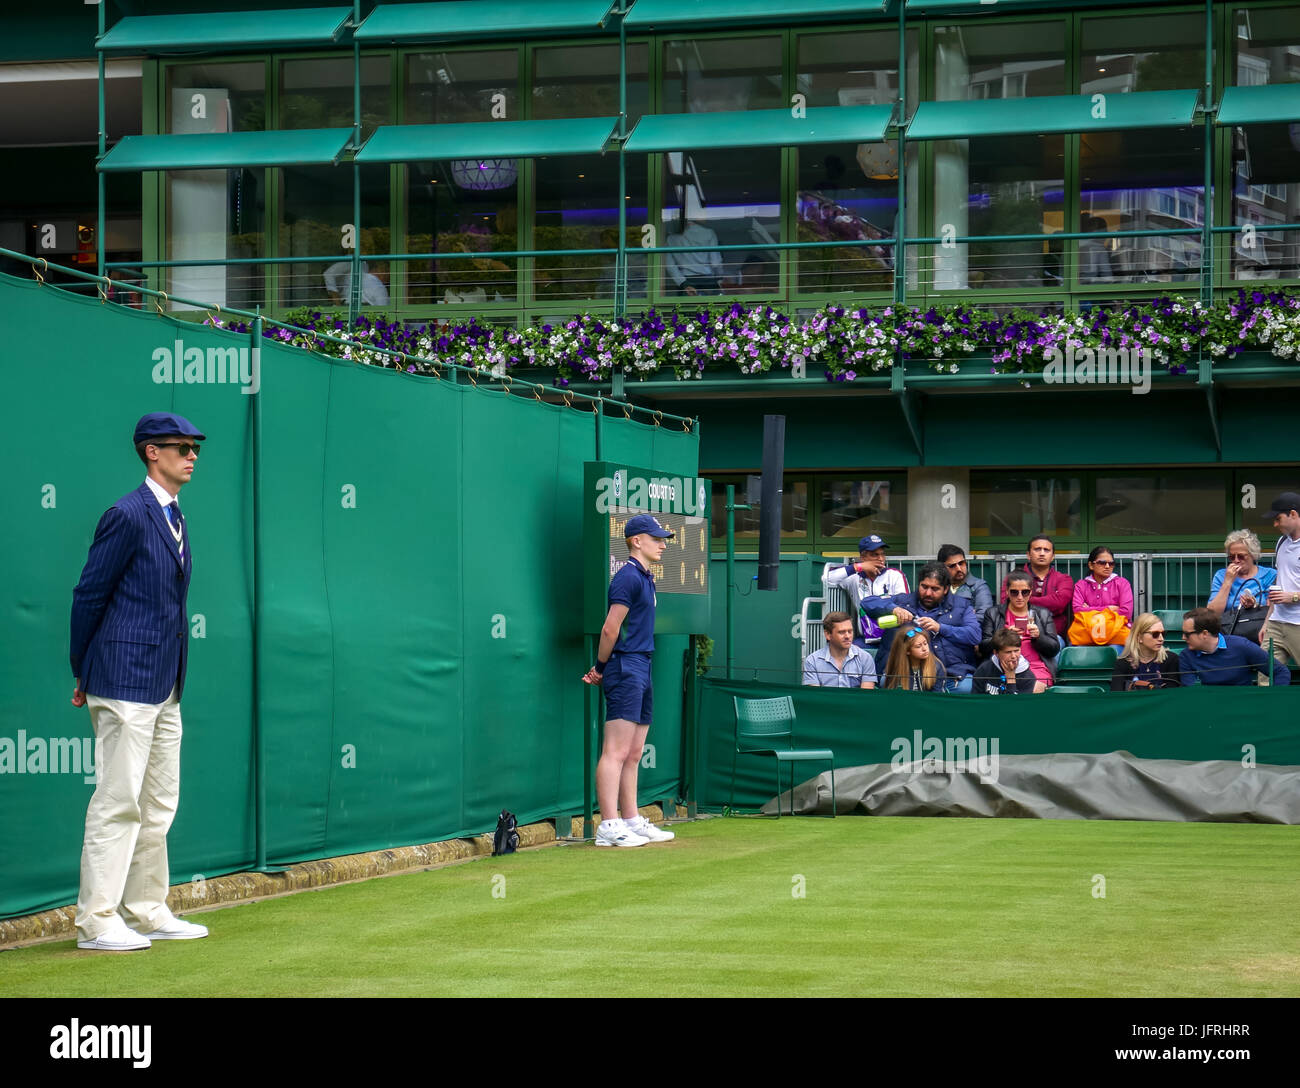 Wimbledon line judge and ball boy standing to attention during tennis match on Court 19, AELTC, Wimbledon 2016, Stock Photo